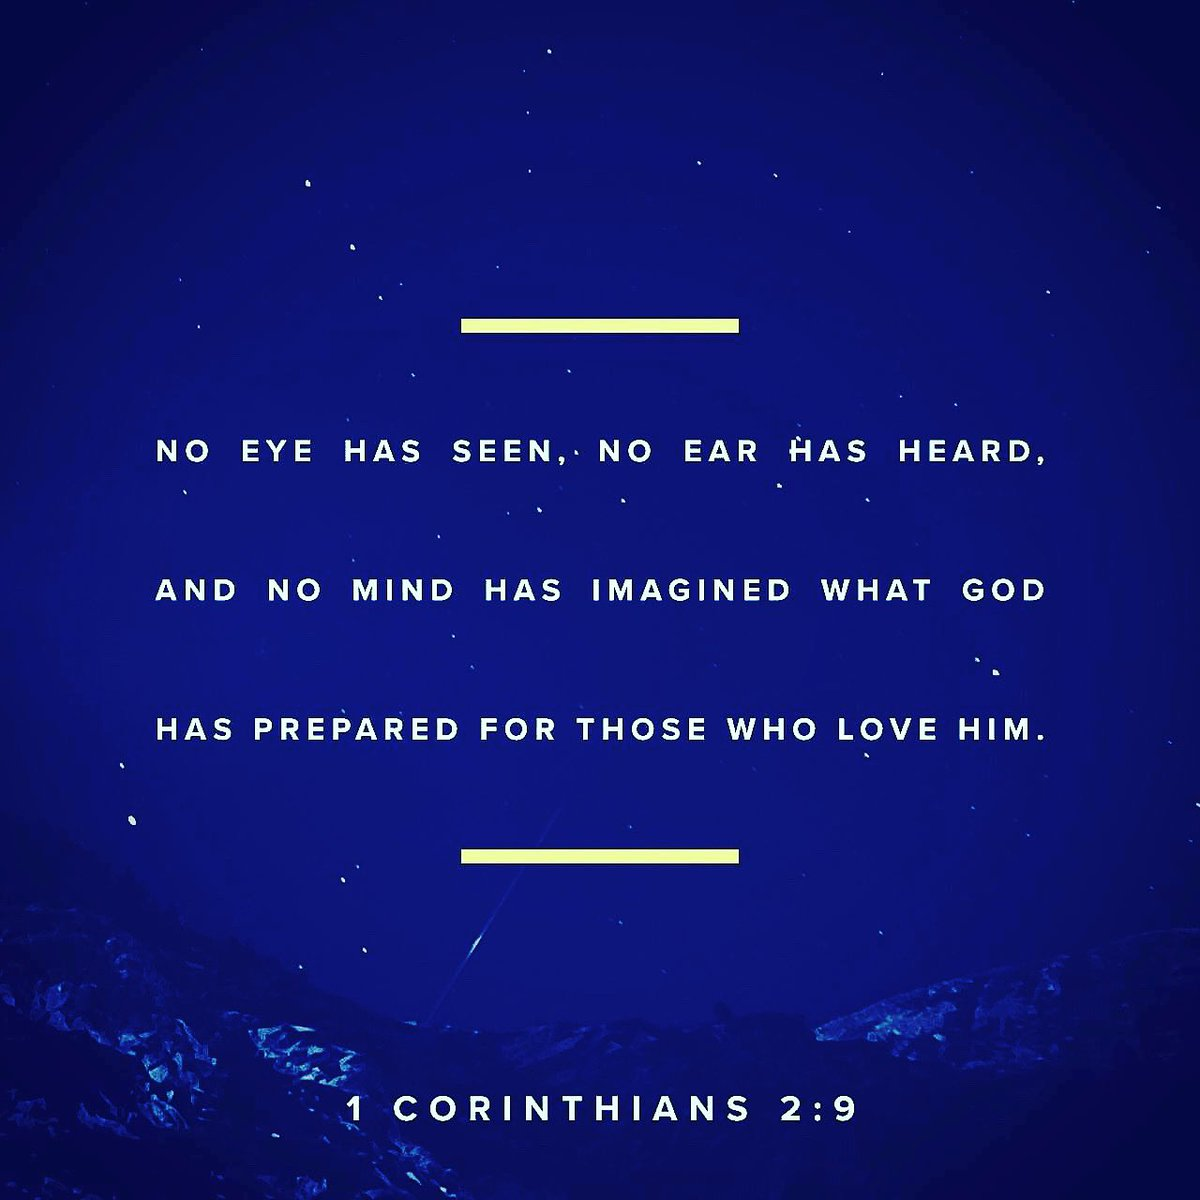 #31DayChallenge: Day 18 - Imagine  As I read today's #devotion and the #daily #readings, it is hard for me to wrap my natural #mind around being able to know the thoughts of #God through listening to His #Spirit from within. #Imagination is where innovation and #genius is born...